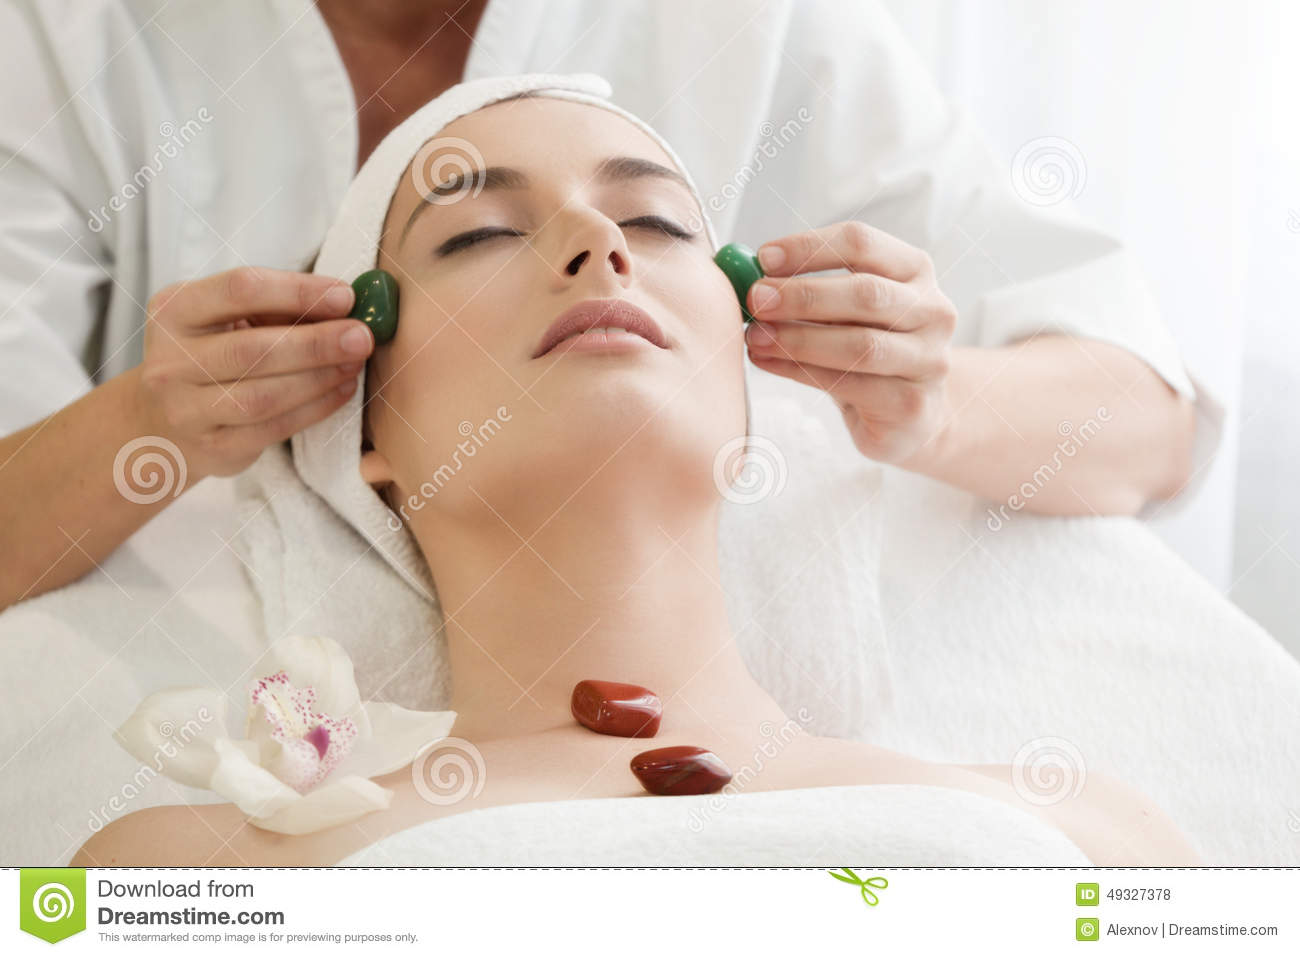 Spa salon: Young Beautiful Woman Having Facial Massage with Stones .